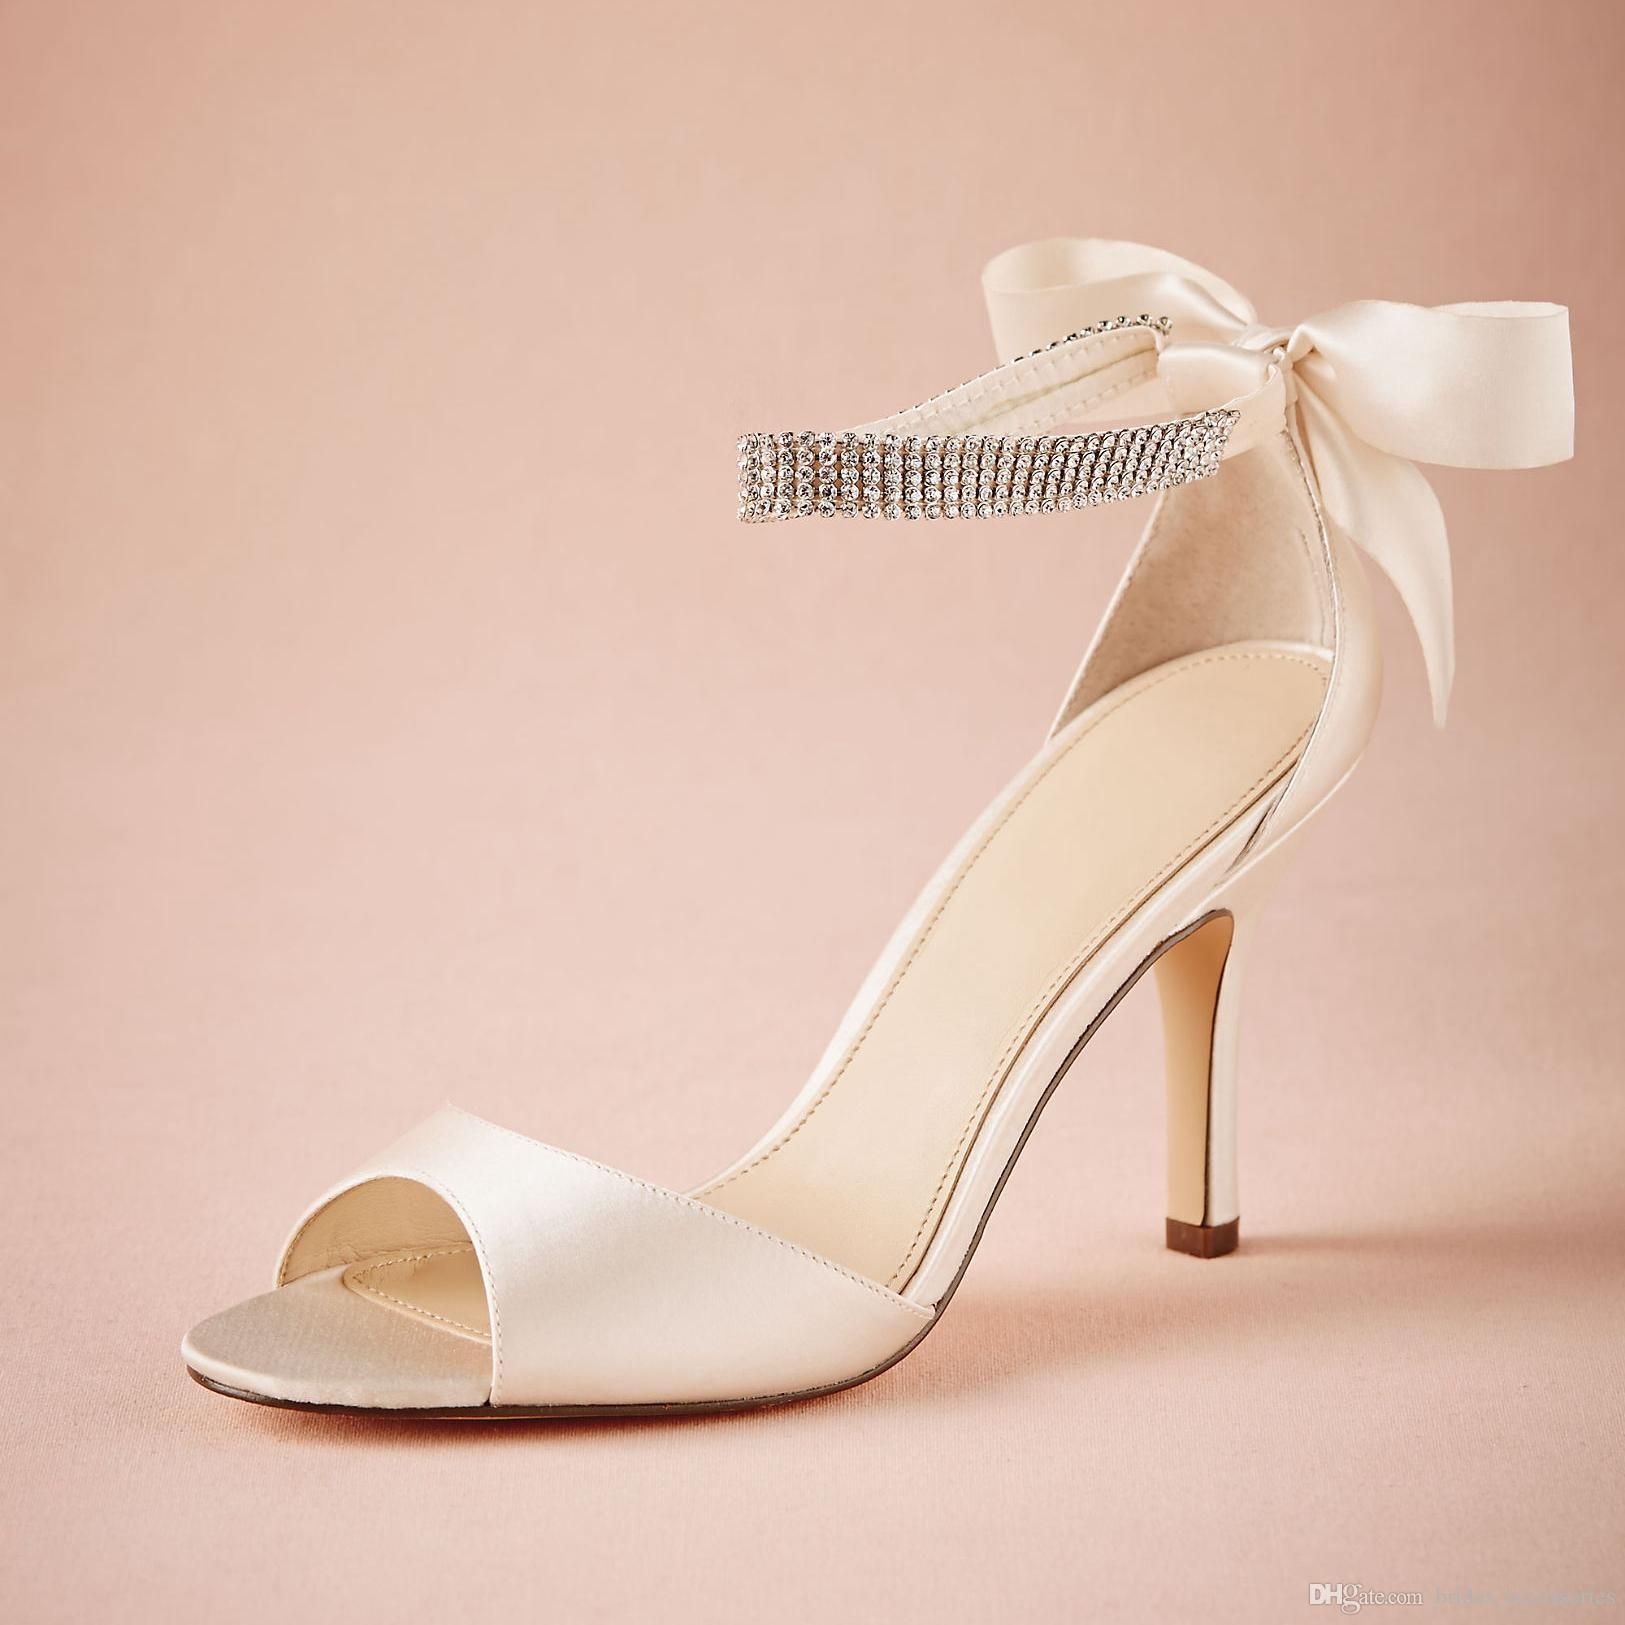 Ivory Satin Wedding Shoes Bowtie At Back Rhinestones Ankle Strap Sandal For Women Bridal Accessories 3 Wrap Heel Crystal Bow Heels Nz Bronze